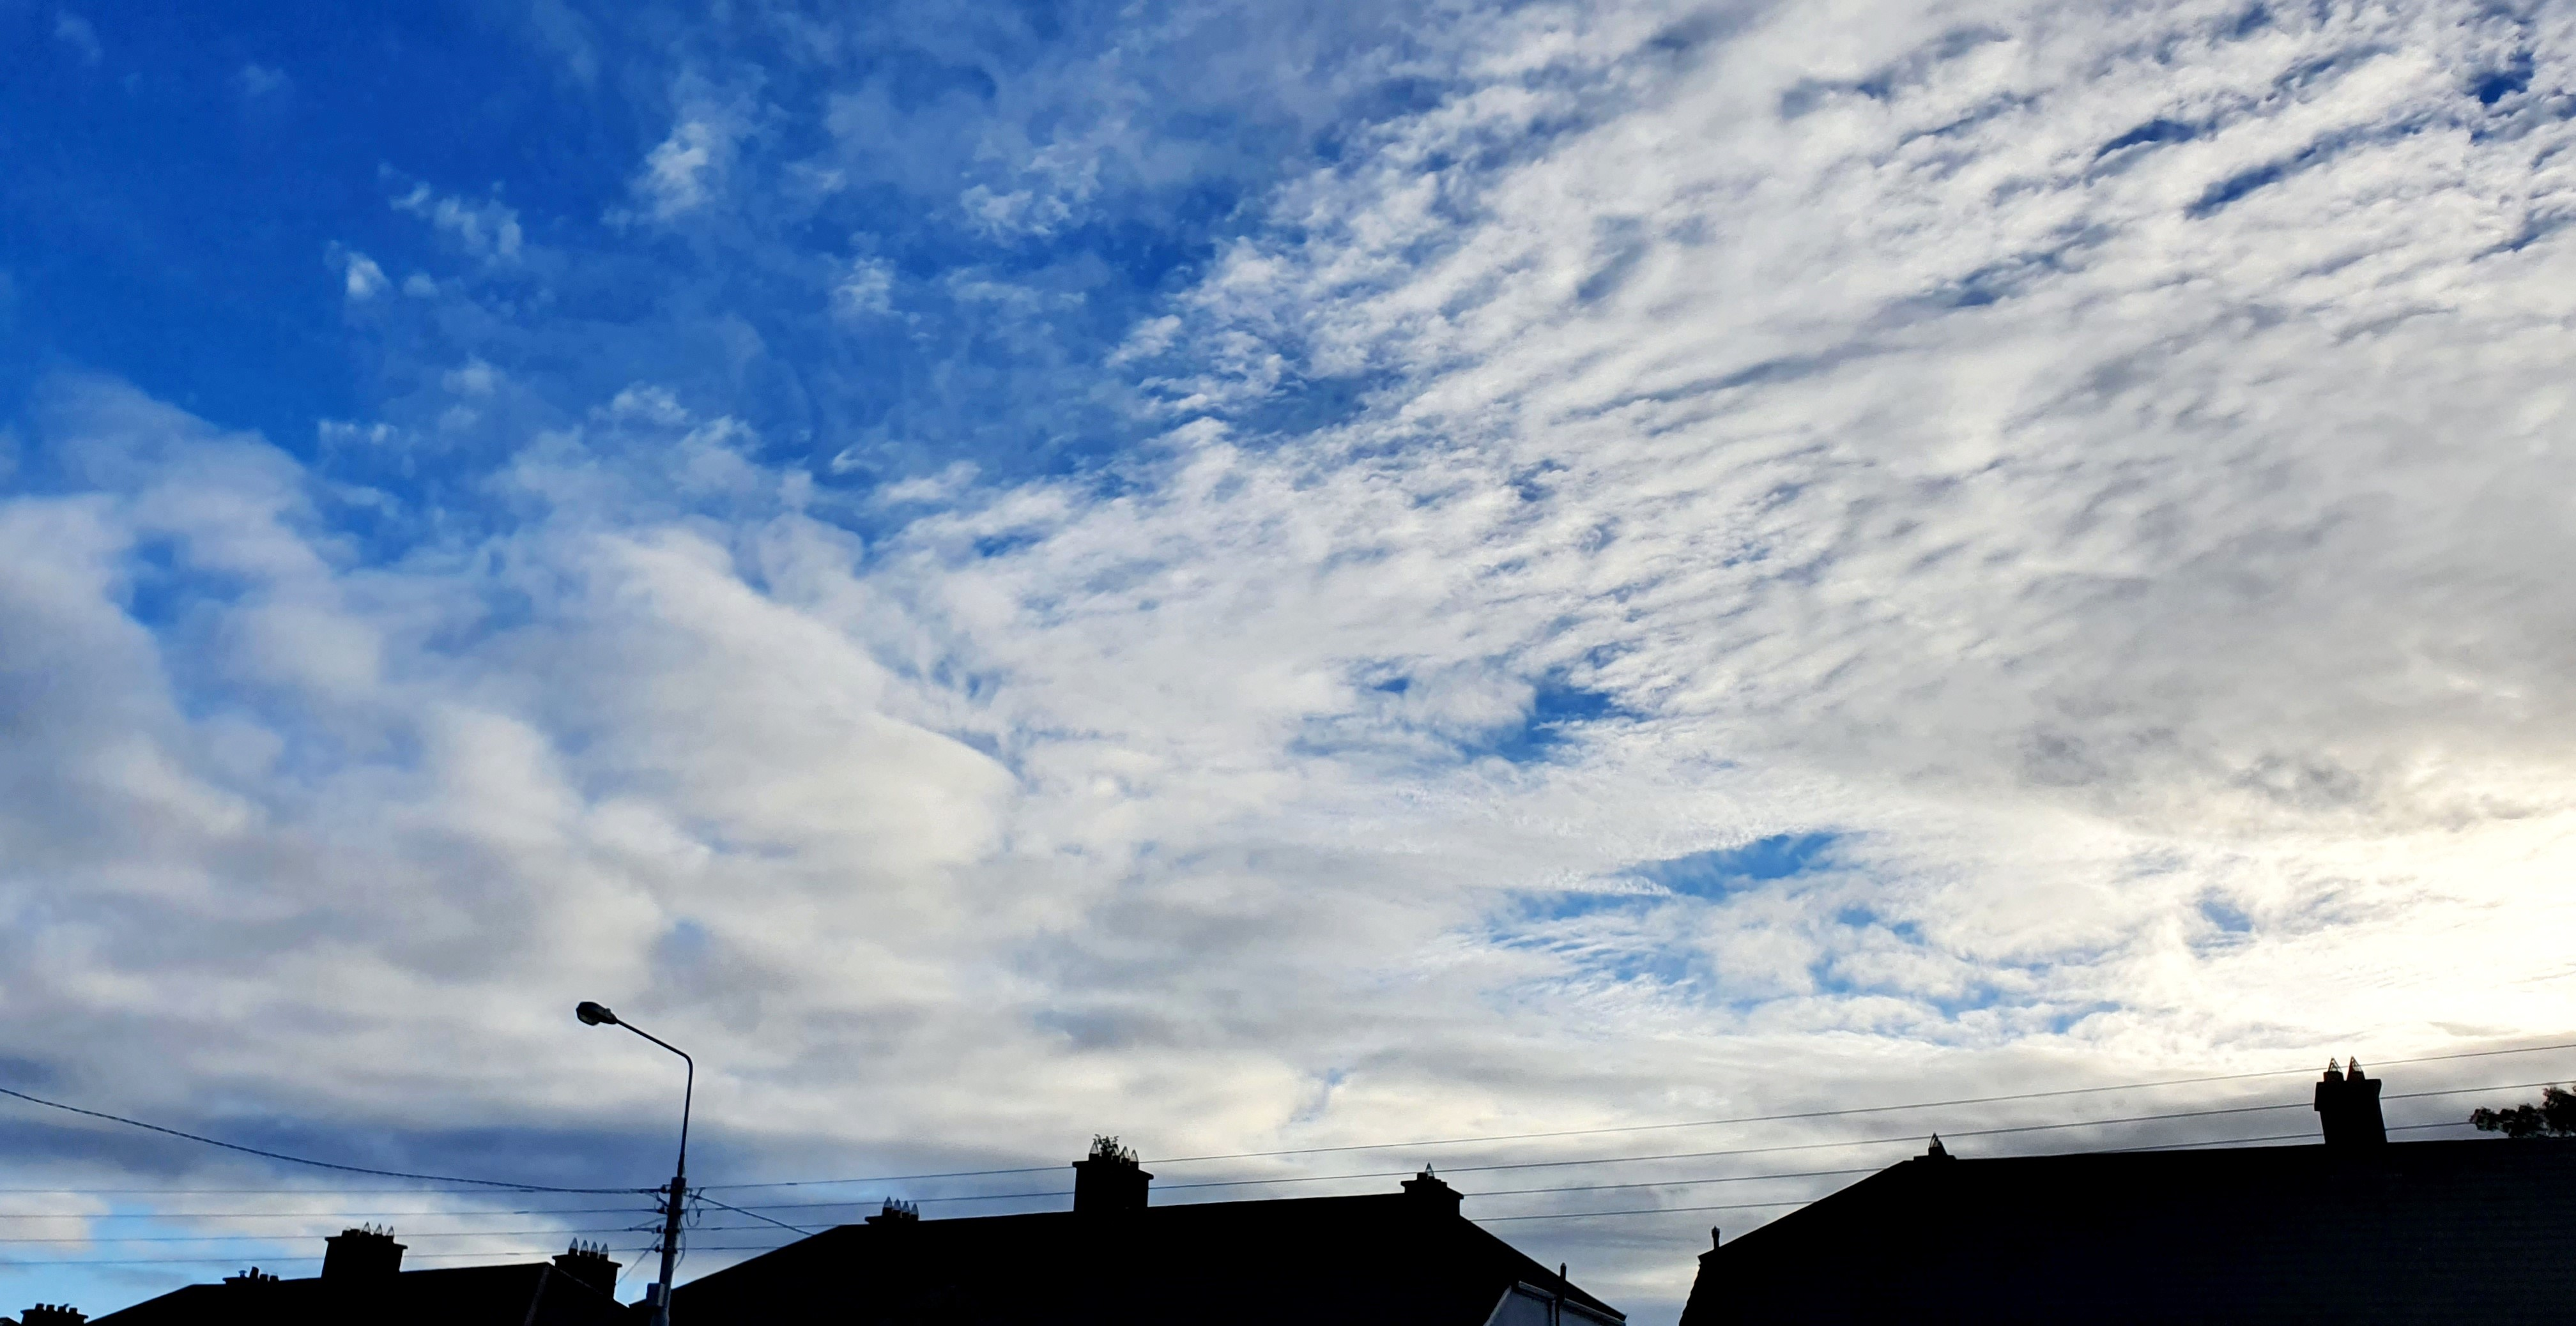 Clouds over house in a blue sky